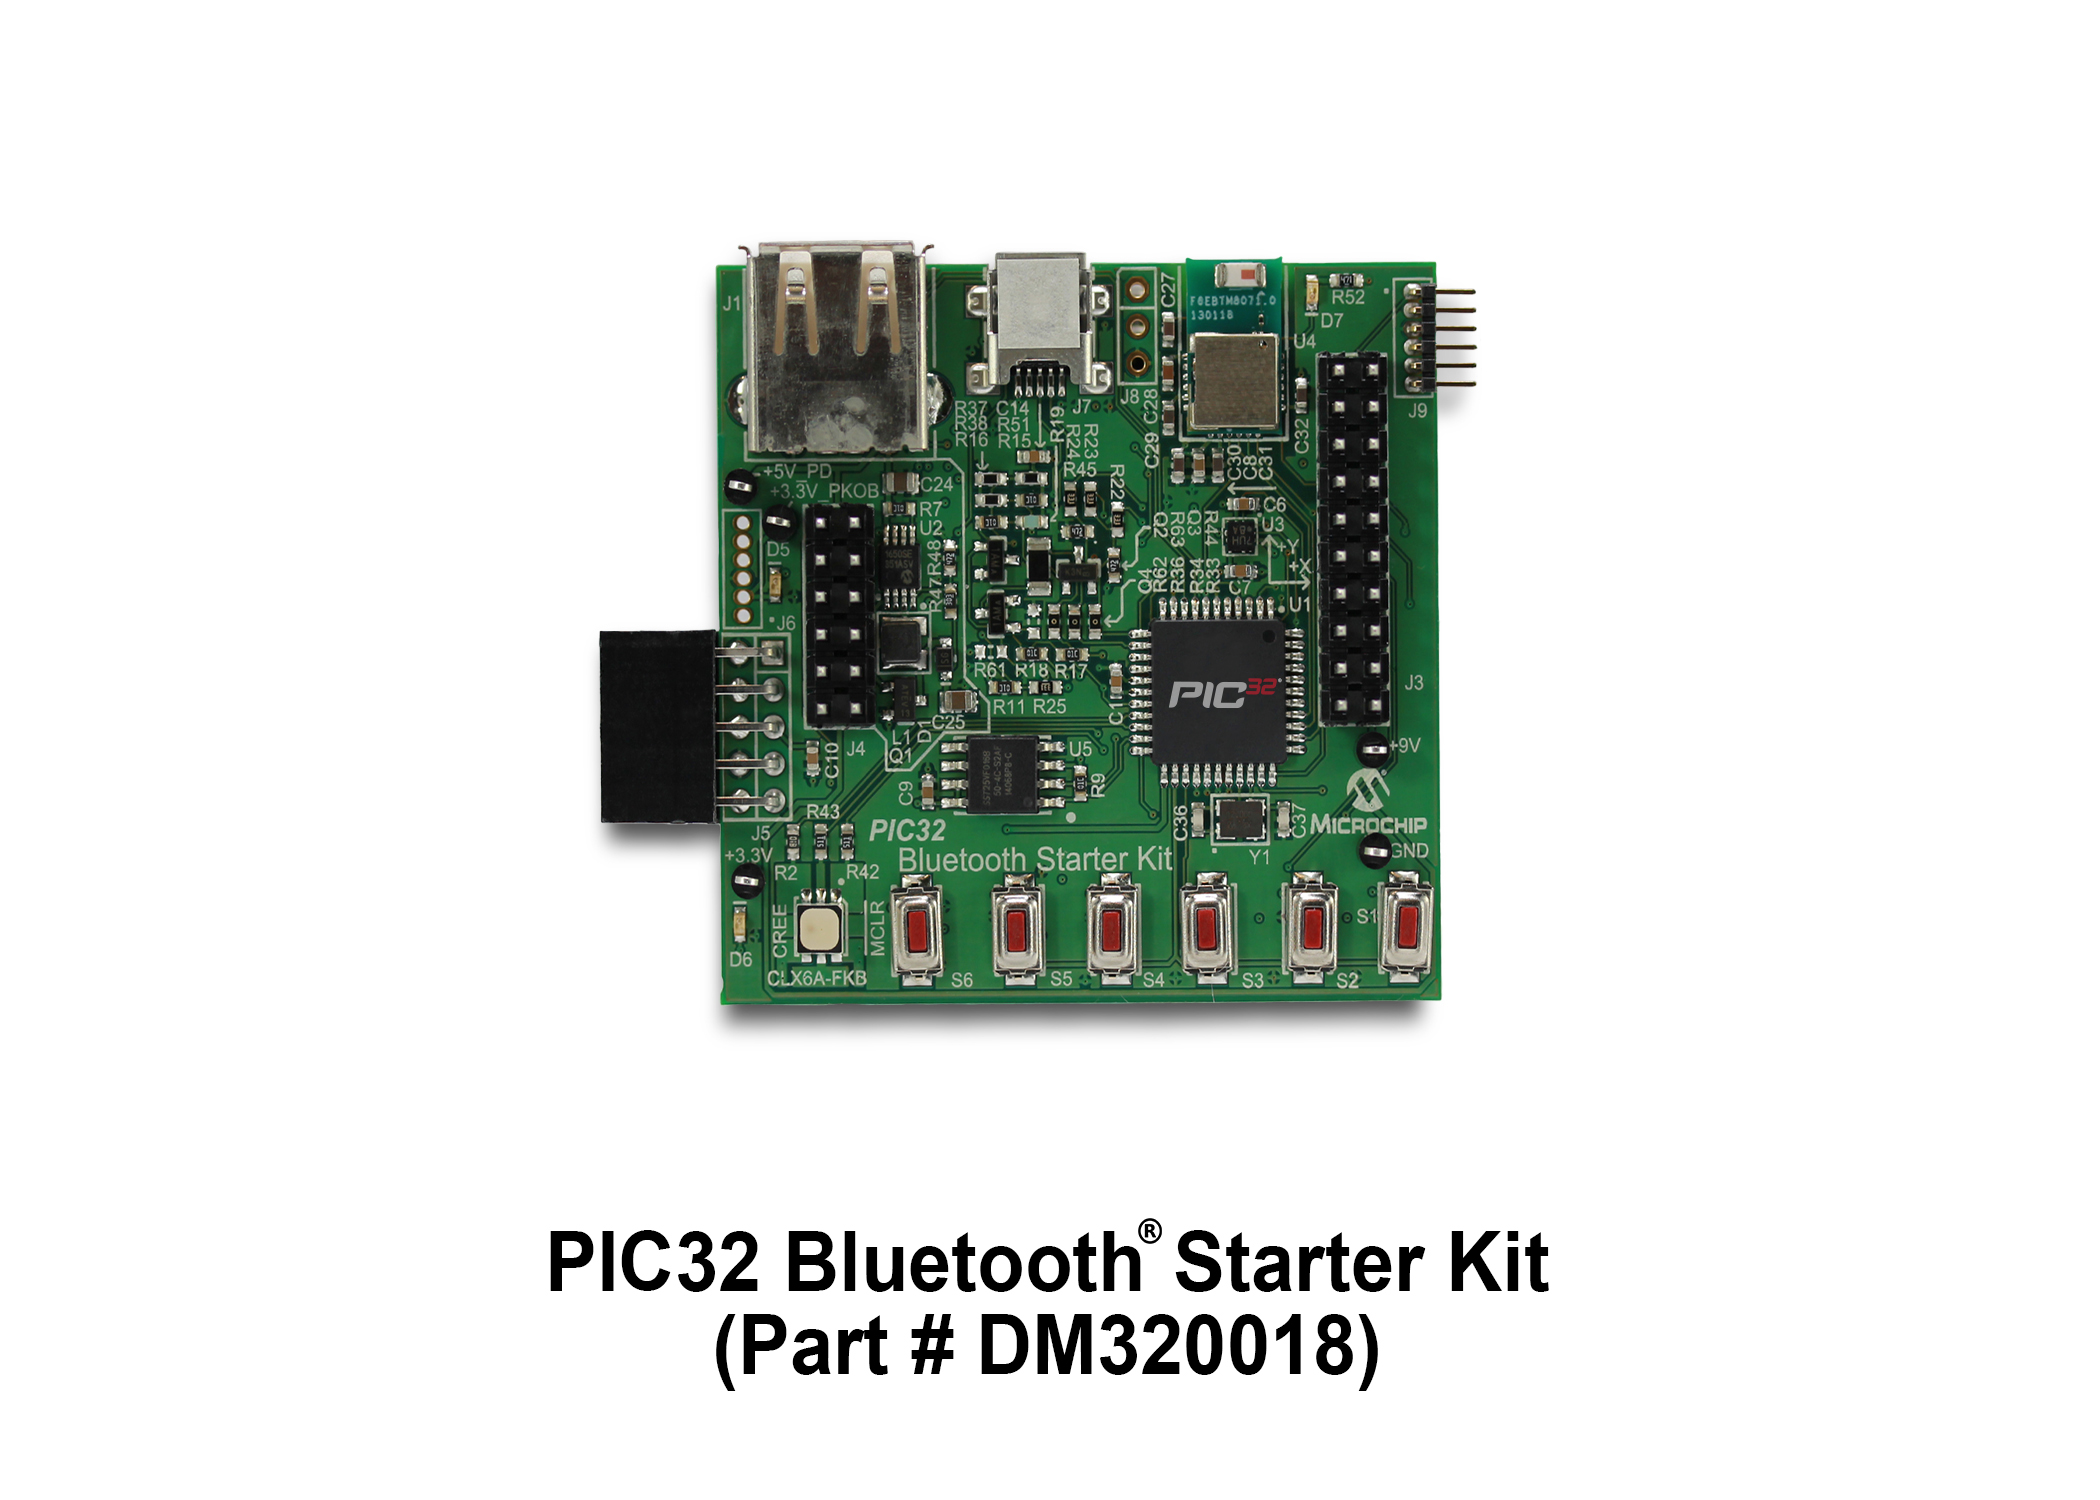 PIC32 Bluetooth Starter Kit DM320018